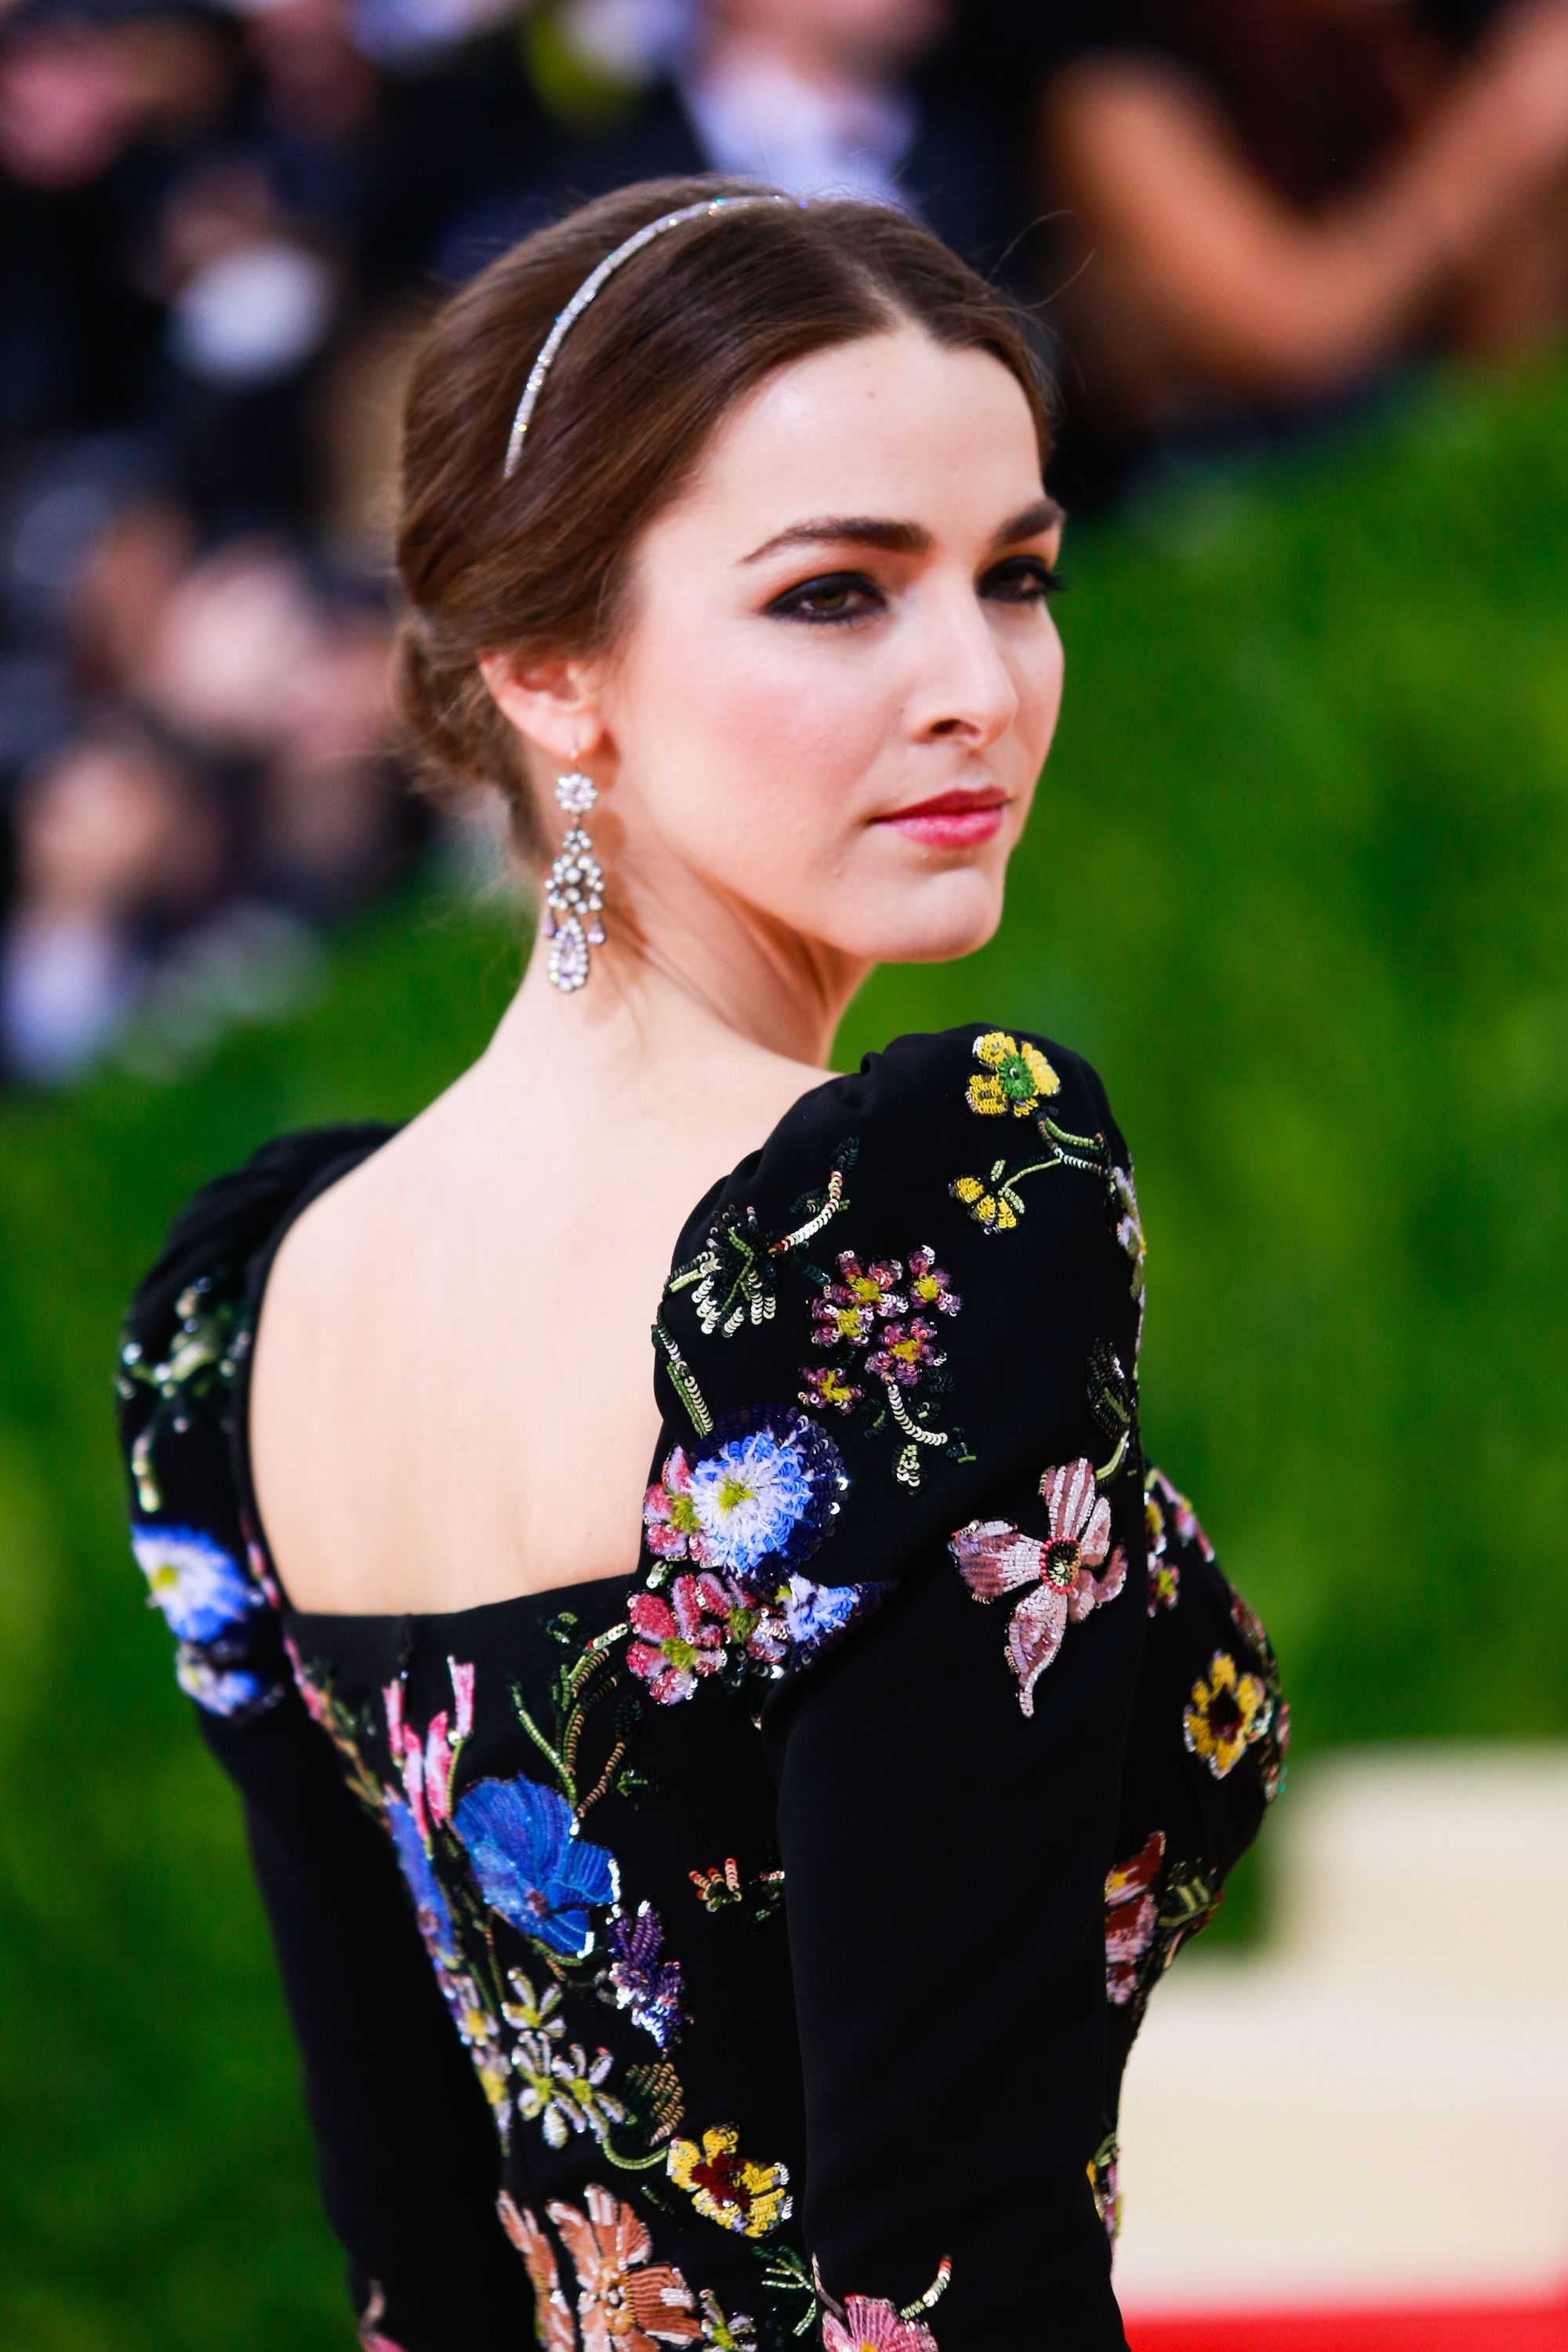 Headband and bandana hairstyles: Bee Shaffer on the red carpet at MET Gala with her brown her styled in a chic updo with minimal headband.